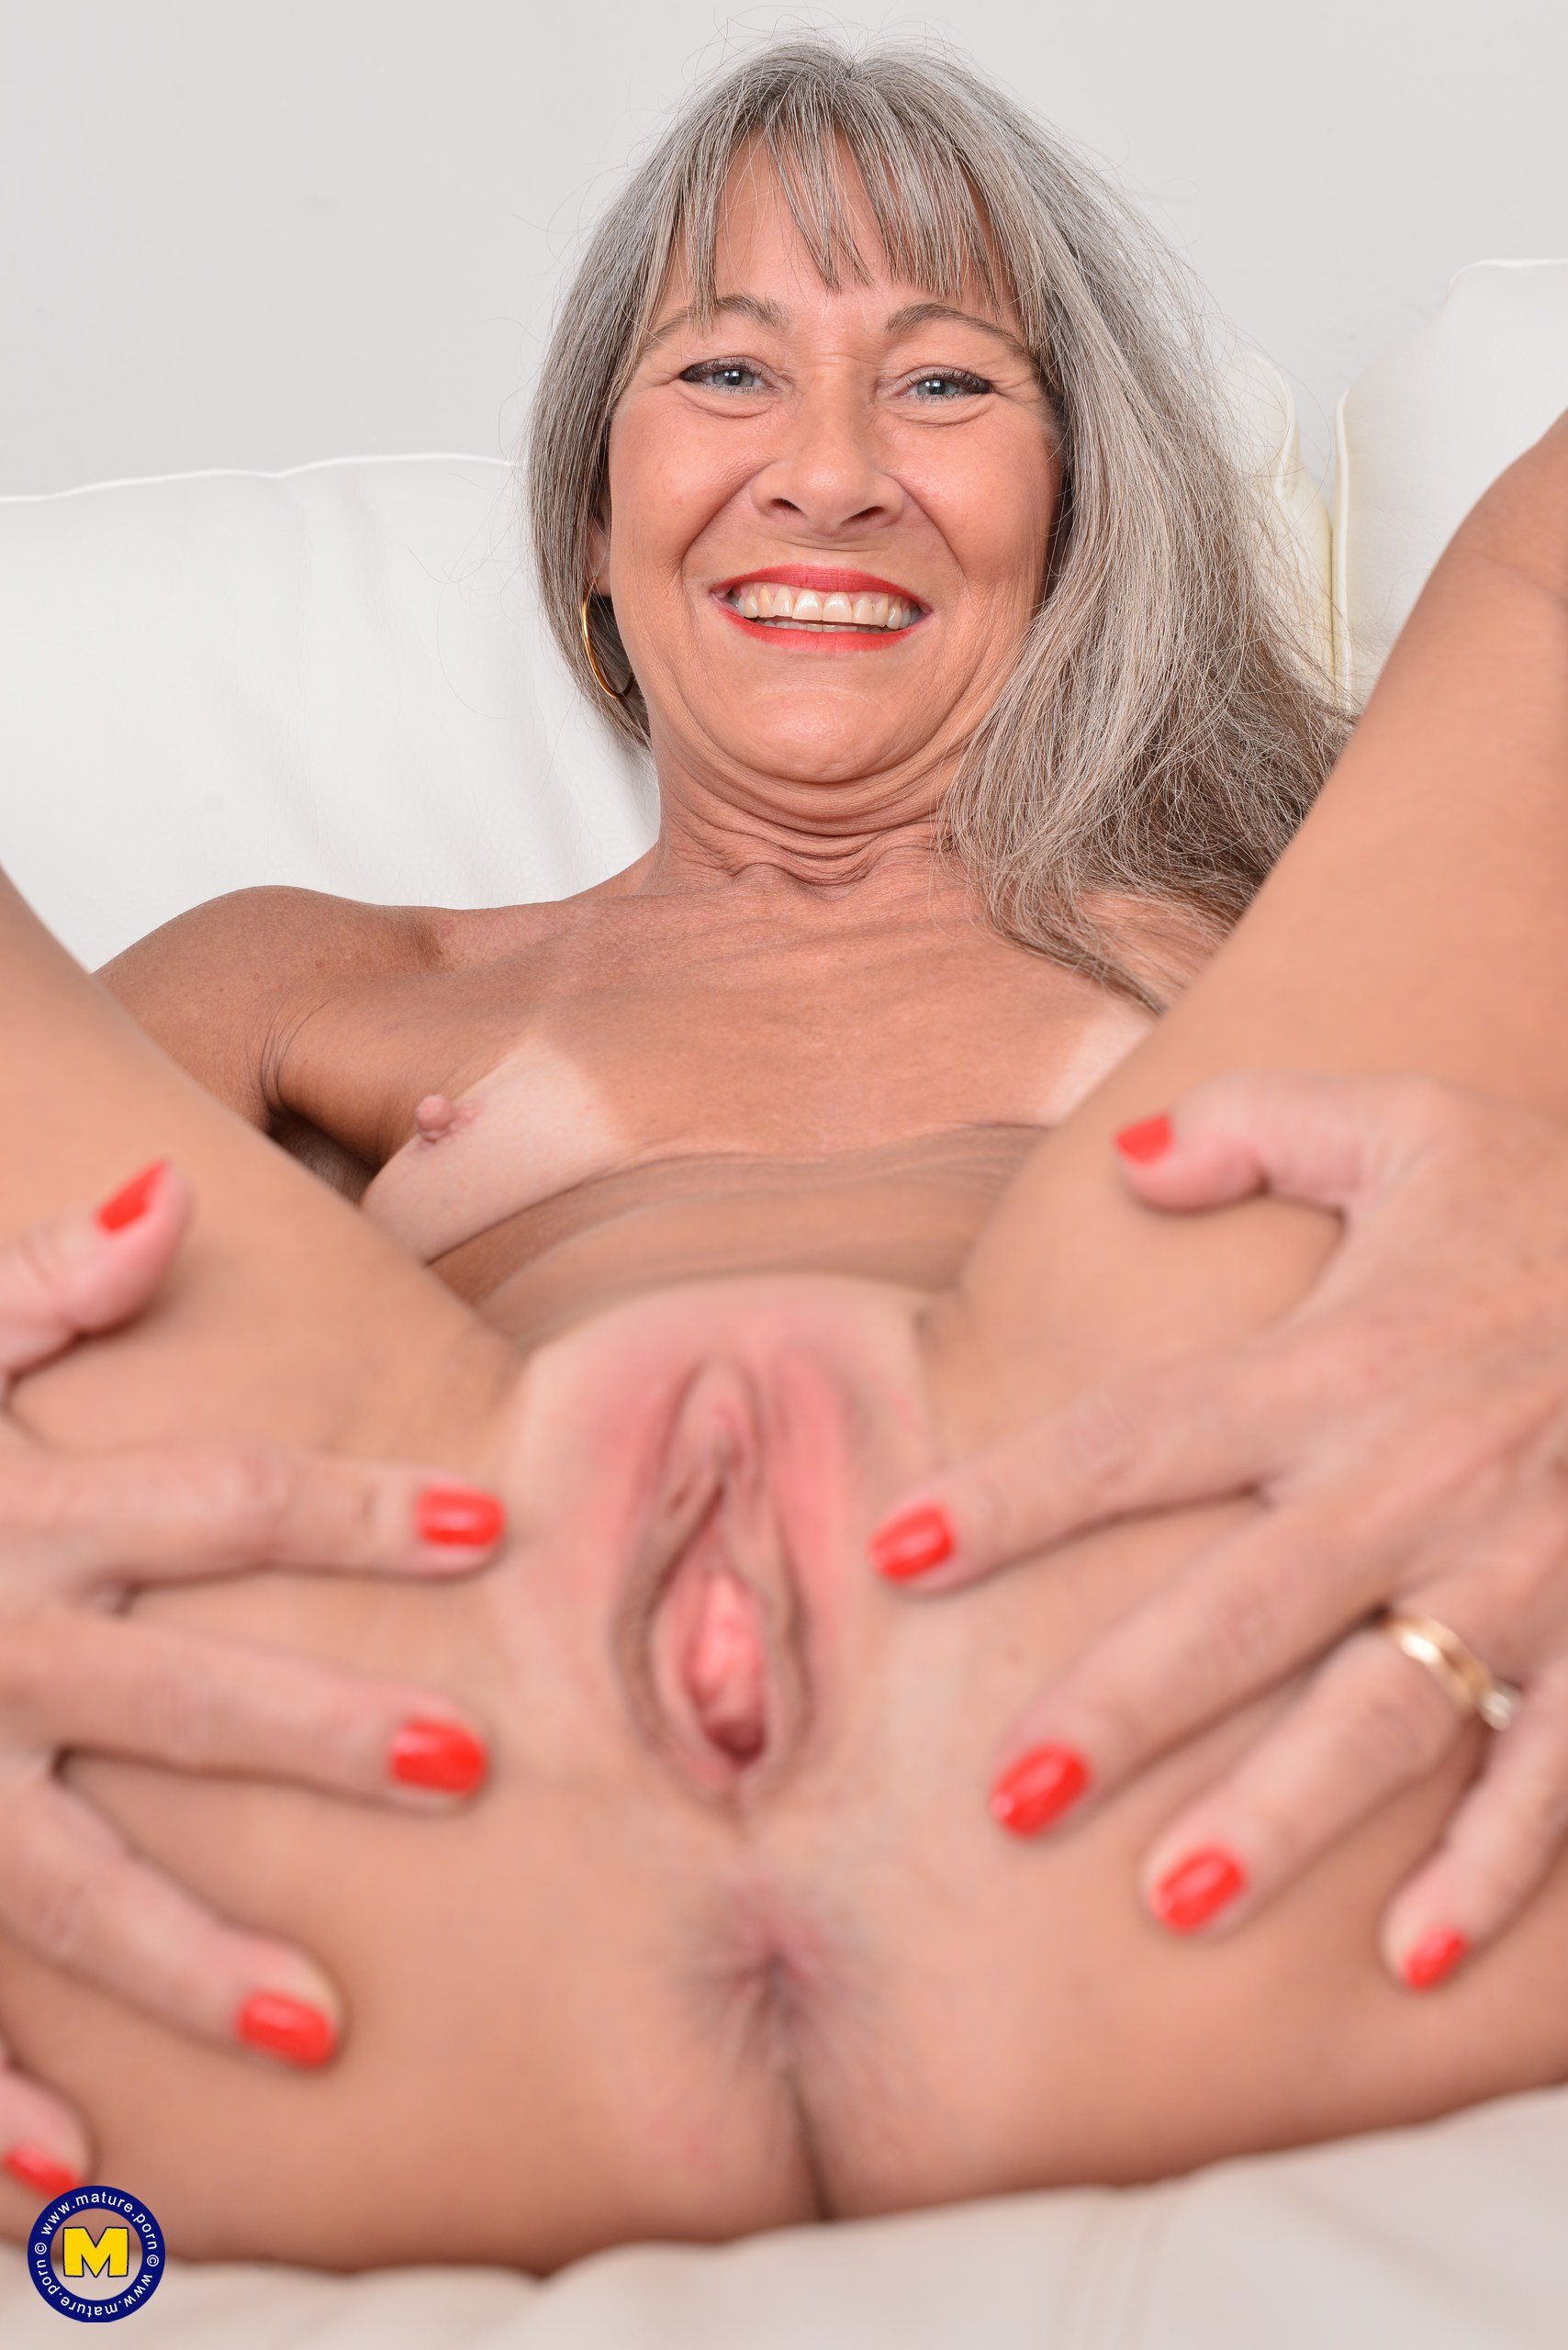 Old woman juicy pussy